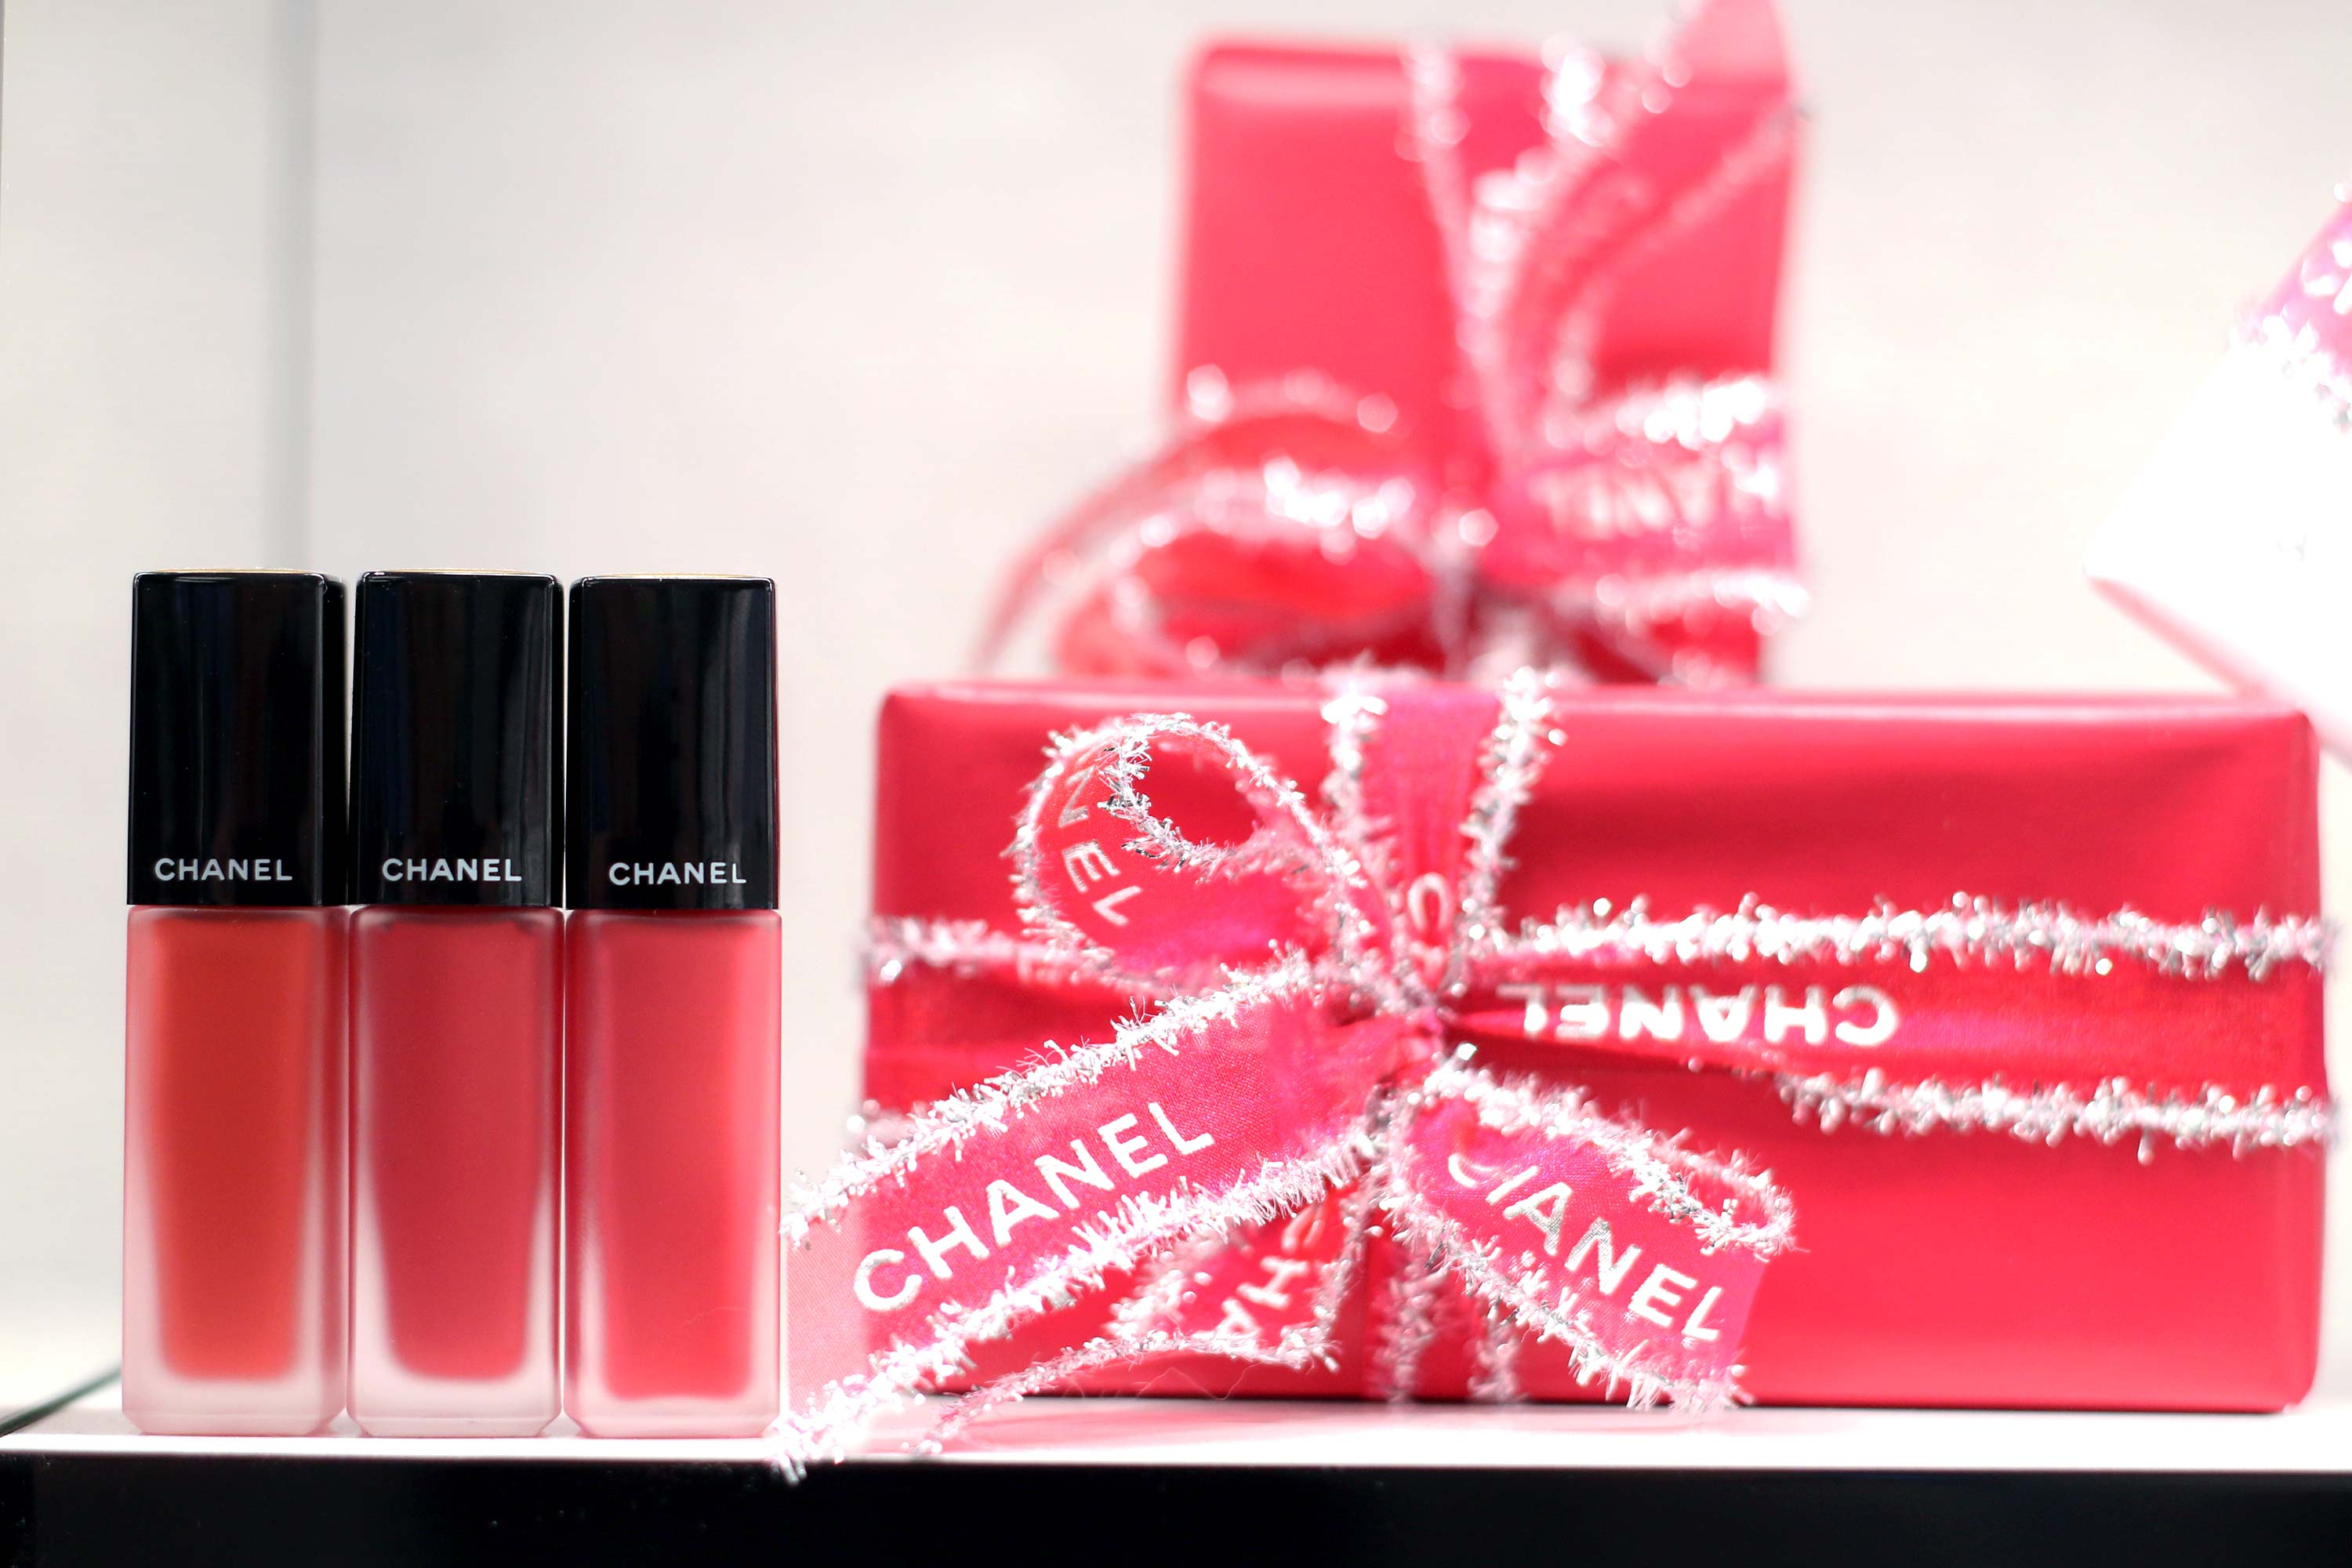 chanel-beauty-boutique-hamburg-8